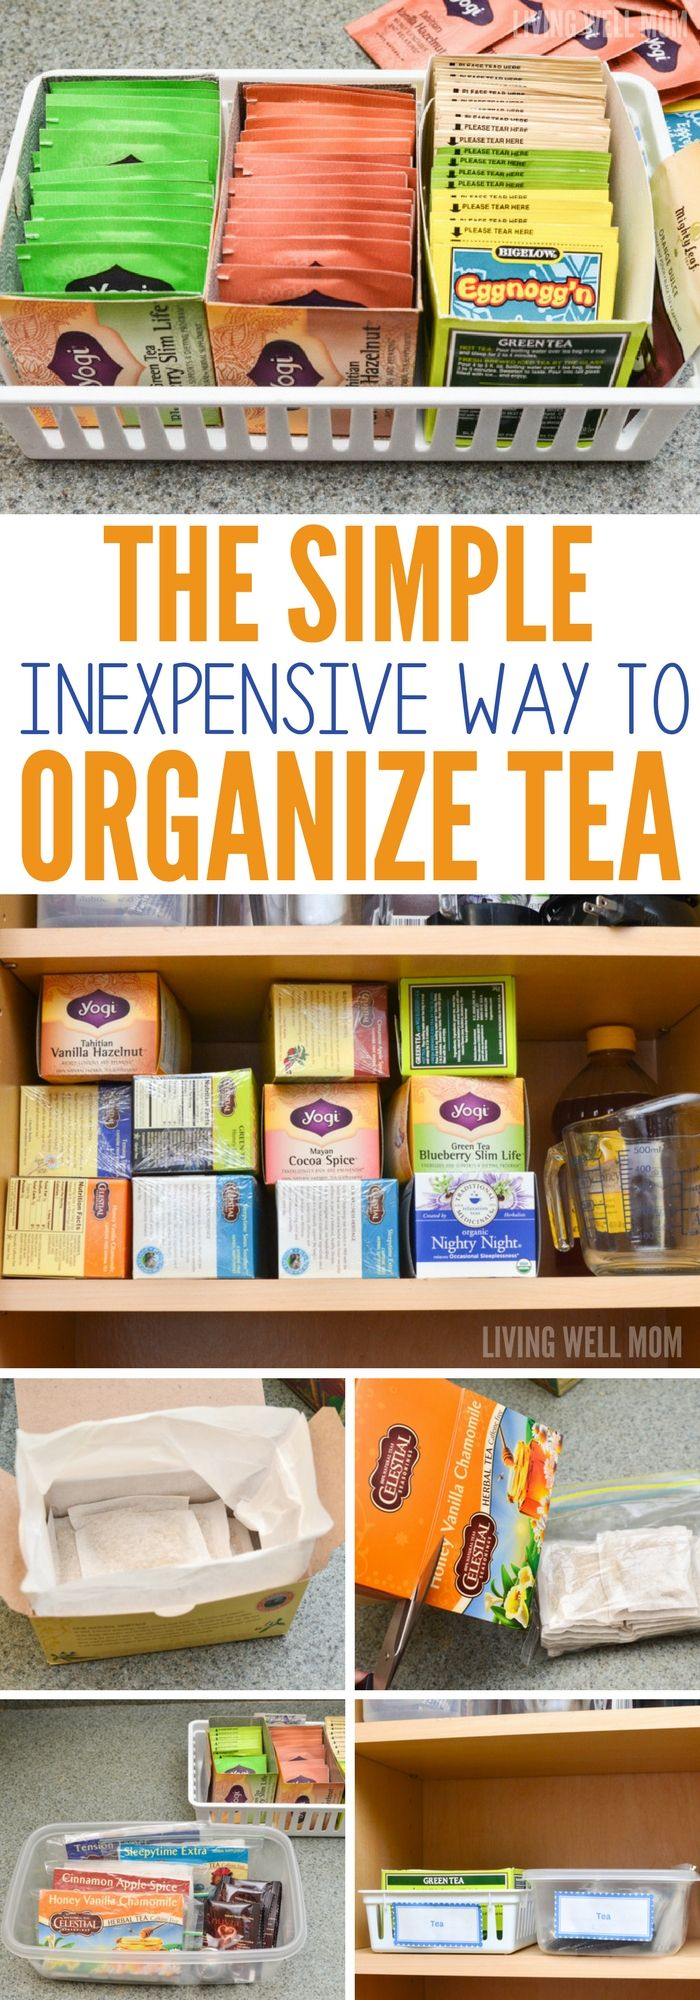 The Simple, Inexpensive Way to Organize Tea #organize